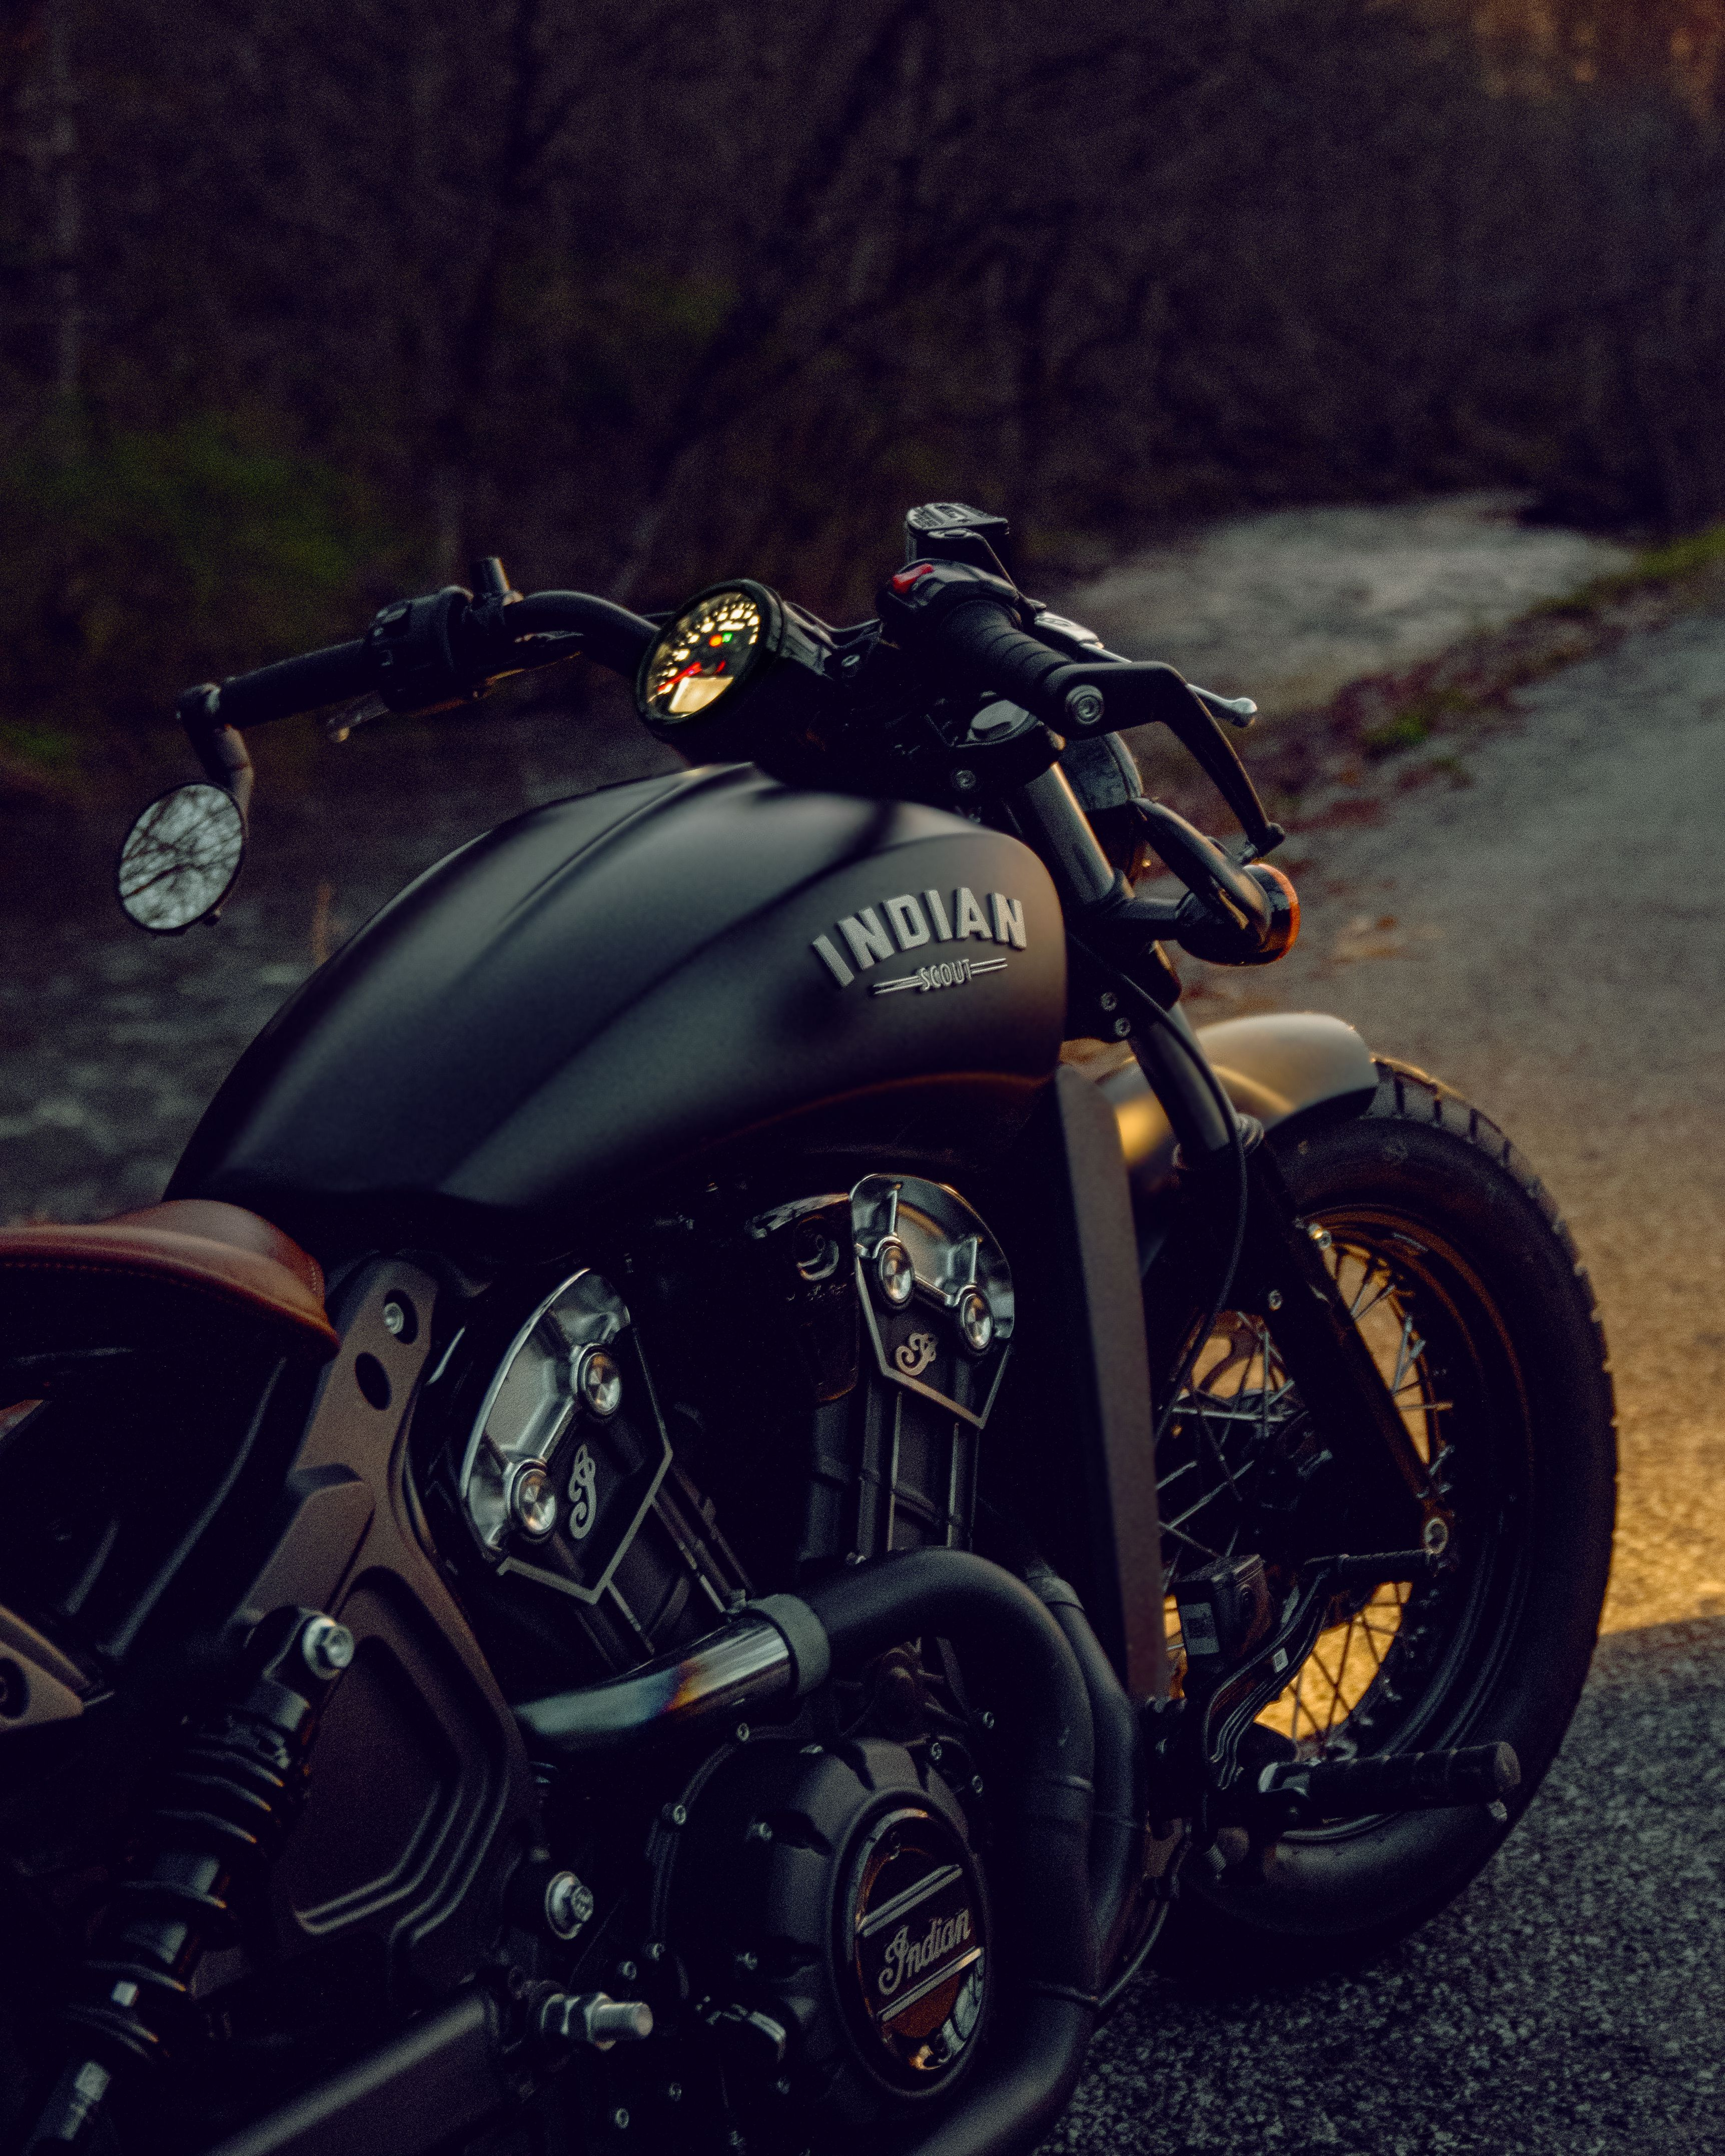 Indian Scout Bobber In 2020 Indian Motorcycle Scout Indian Motorcycle Bobber Motorcycle